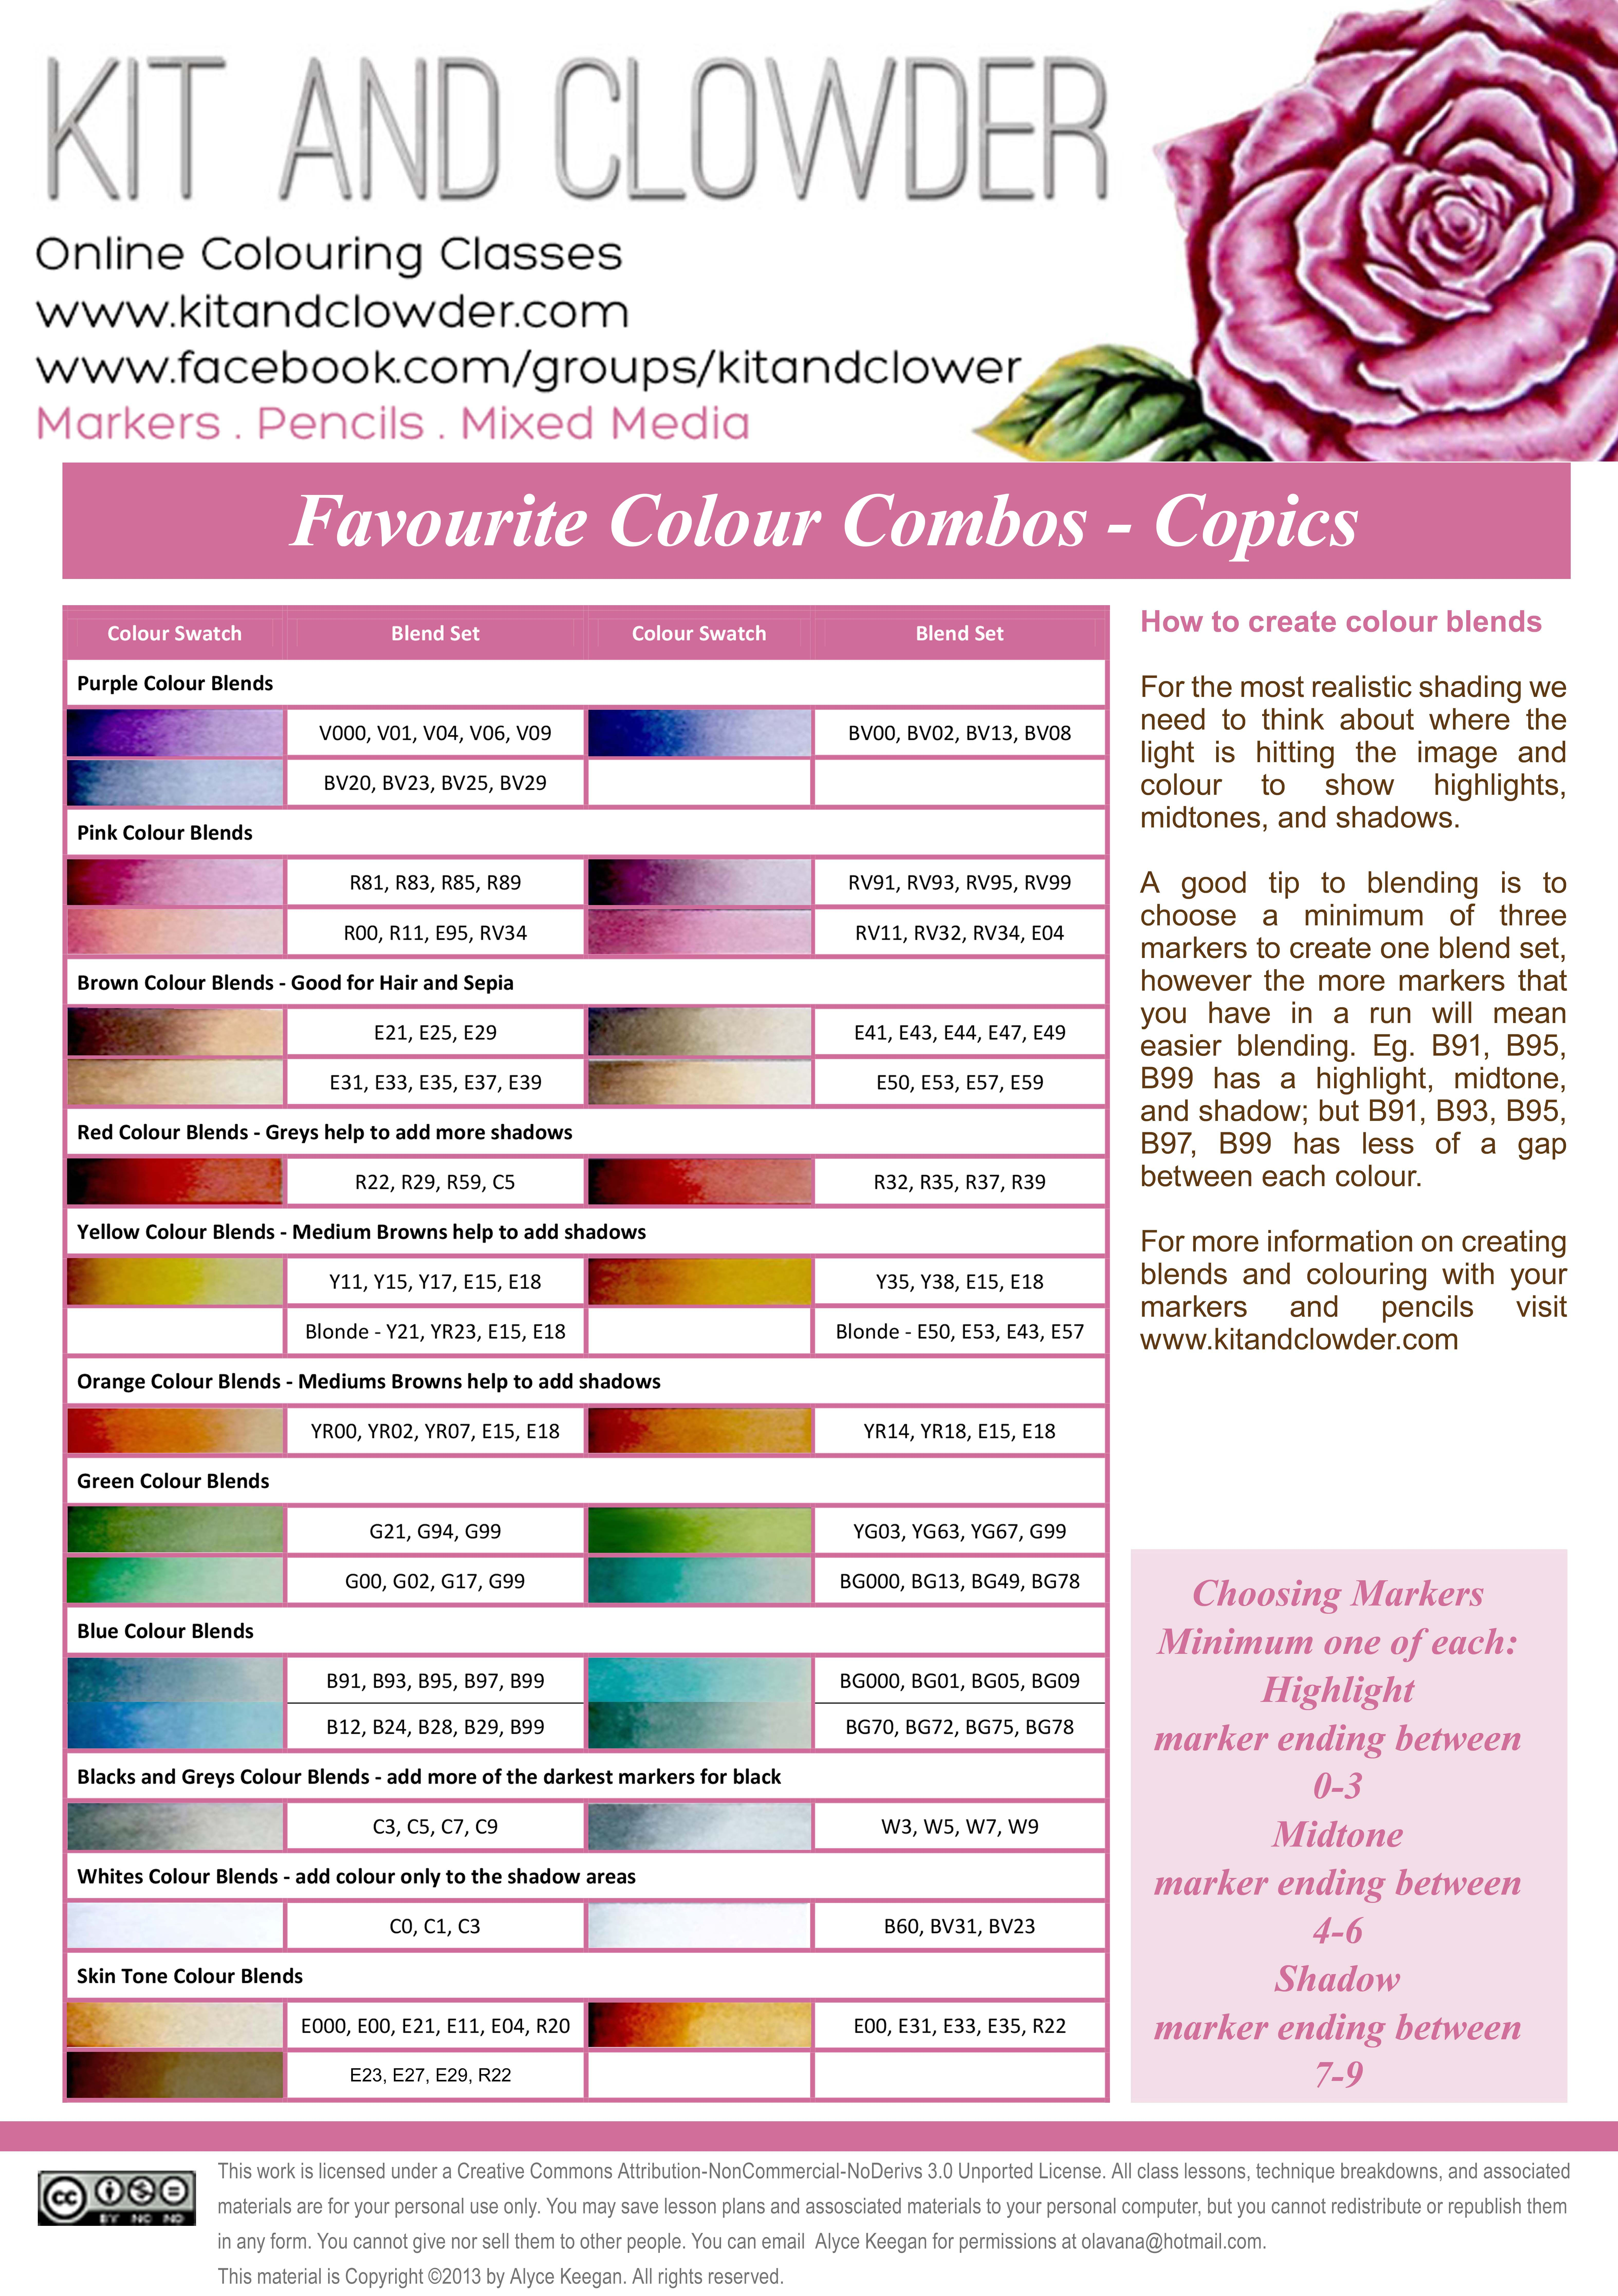 Faqapp cardmaking pinterest prismacolor copic and adult coloring all posts colour combos kit and clowder class rooms nvjuhfo Choice Image